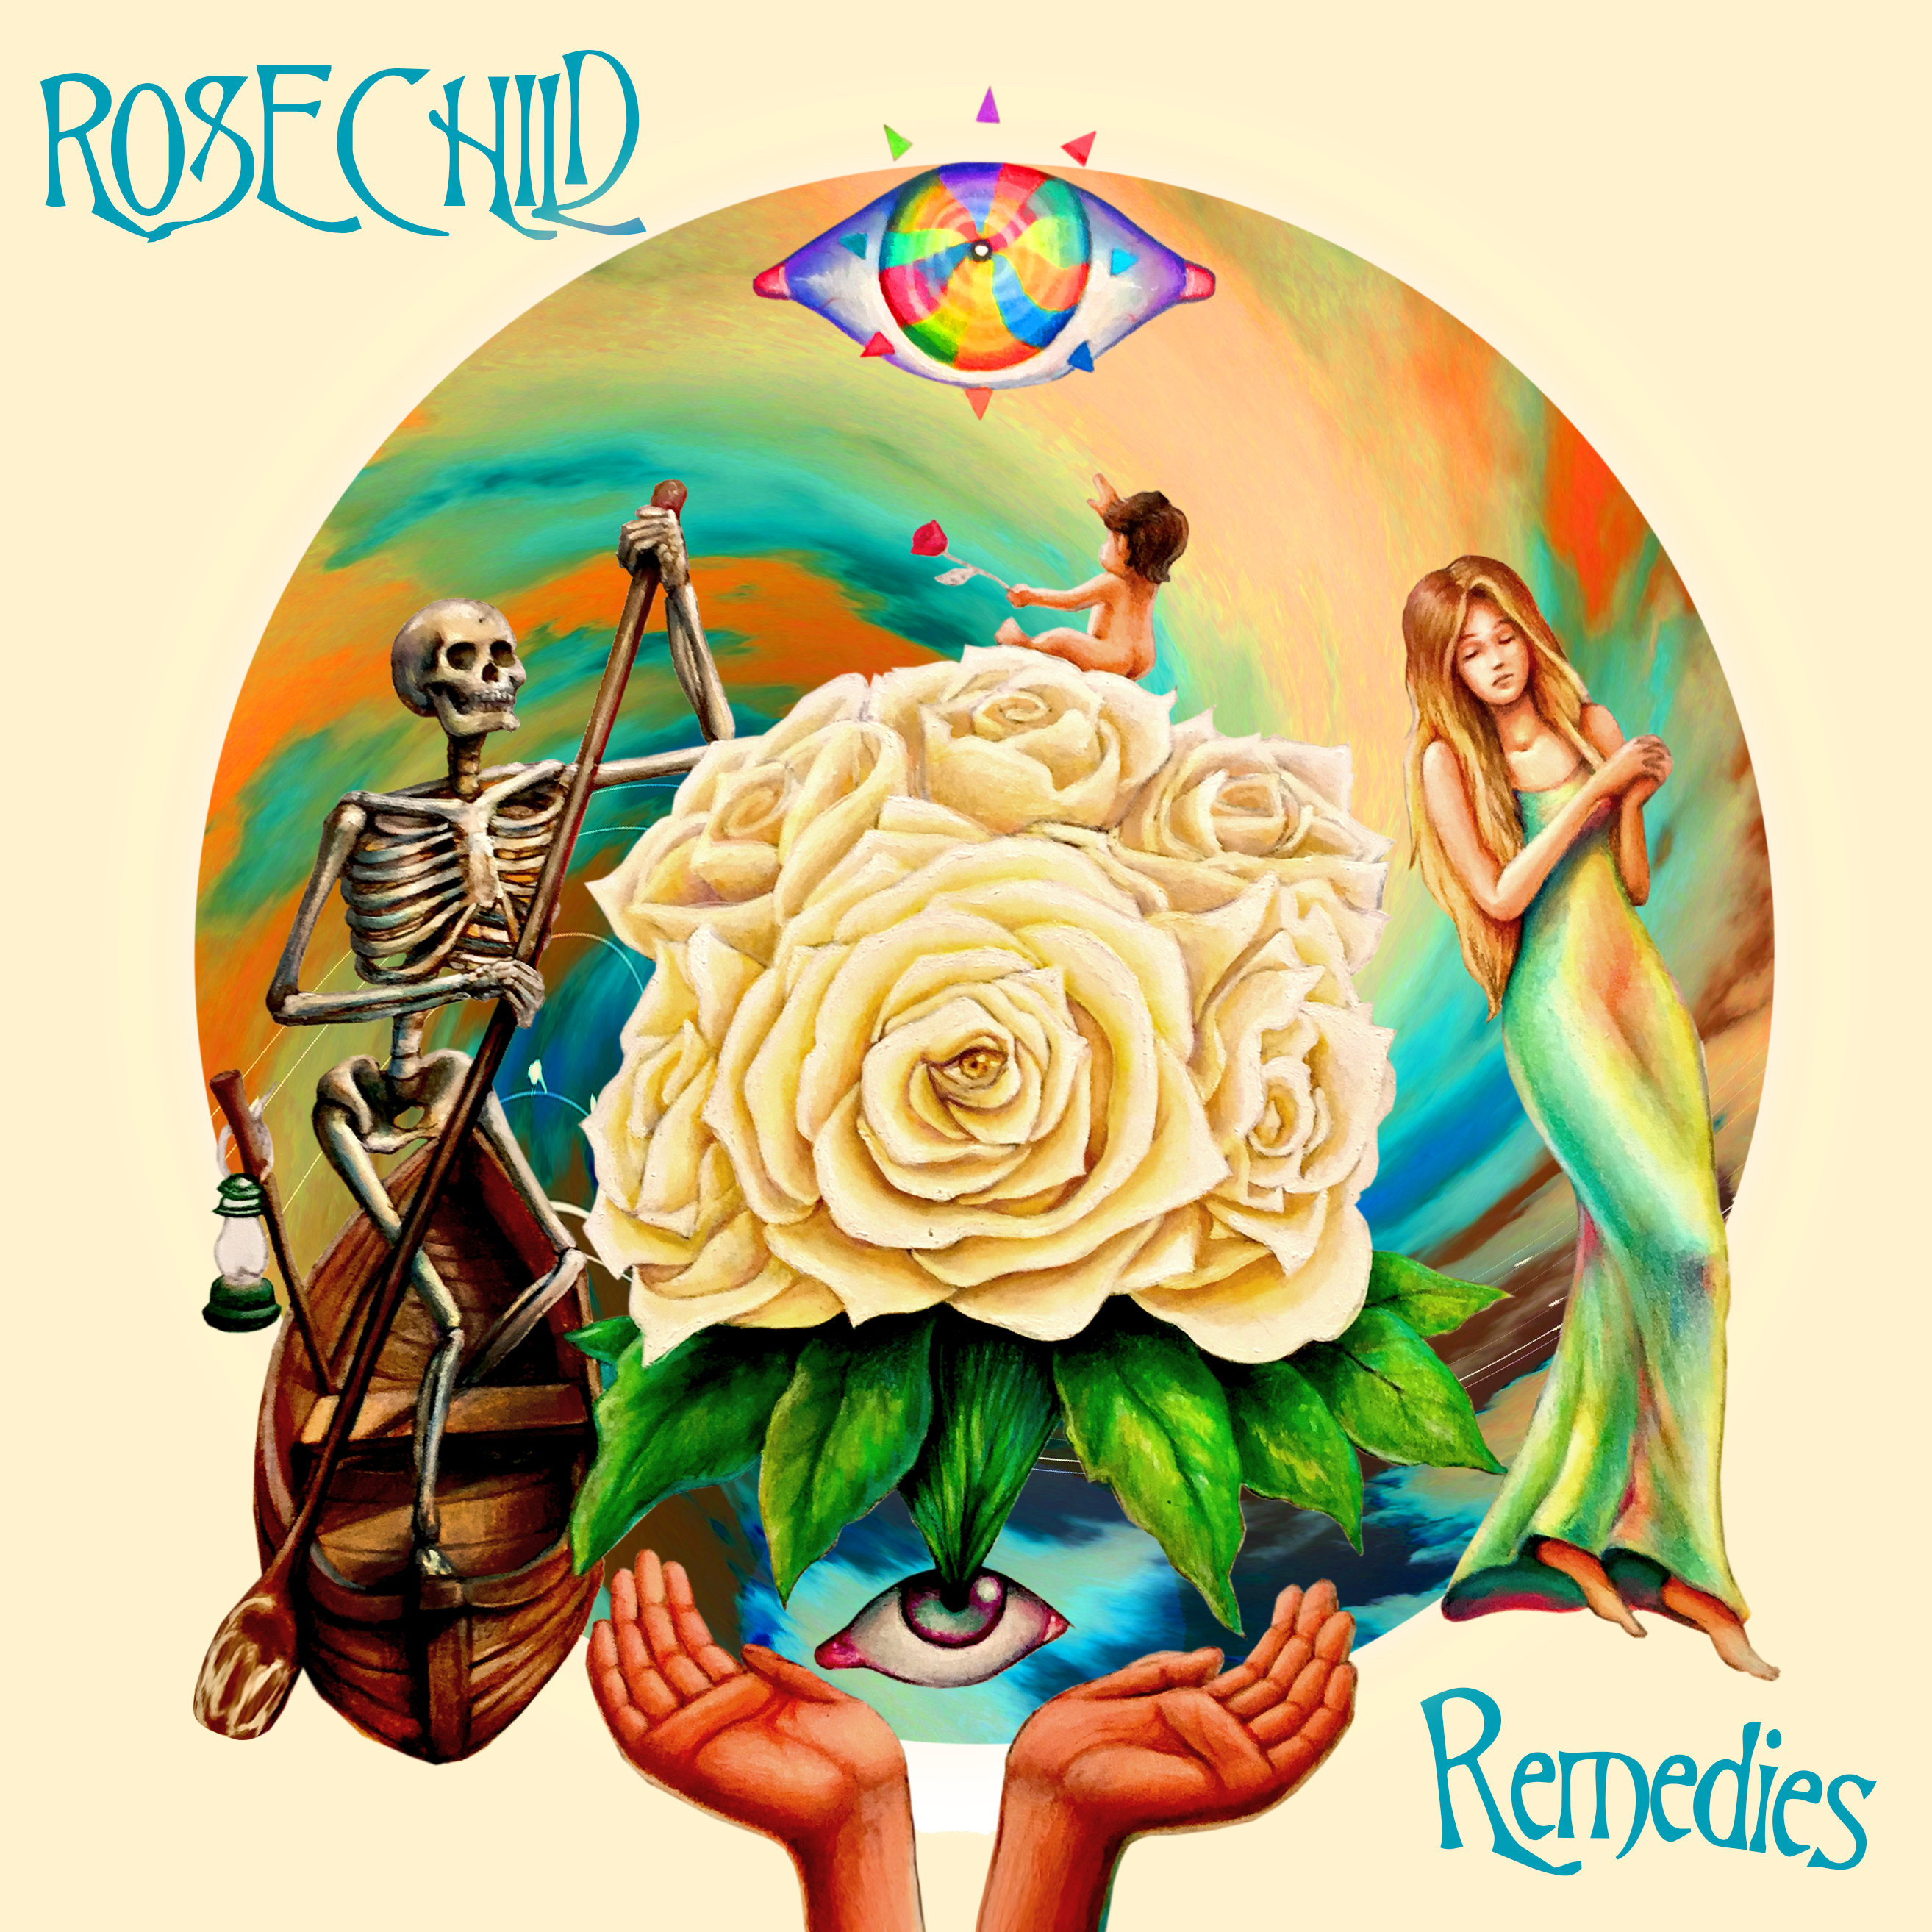 Rosechild Album Art